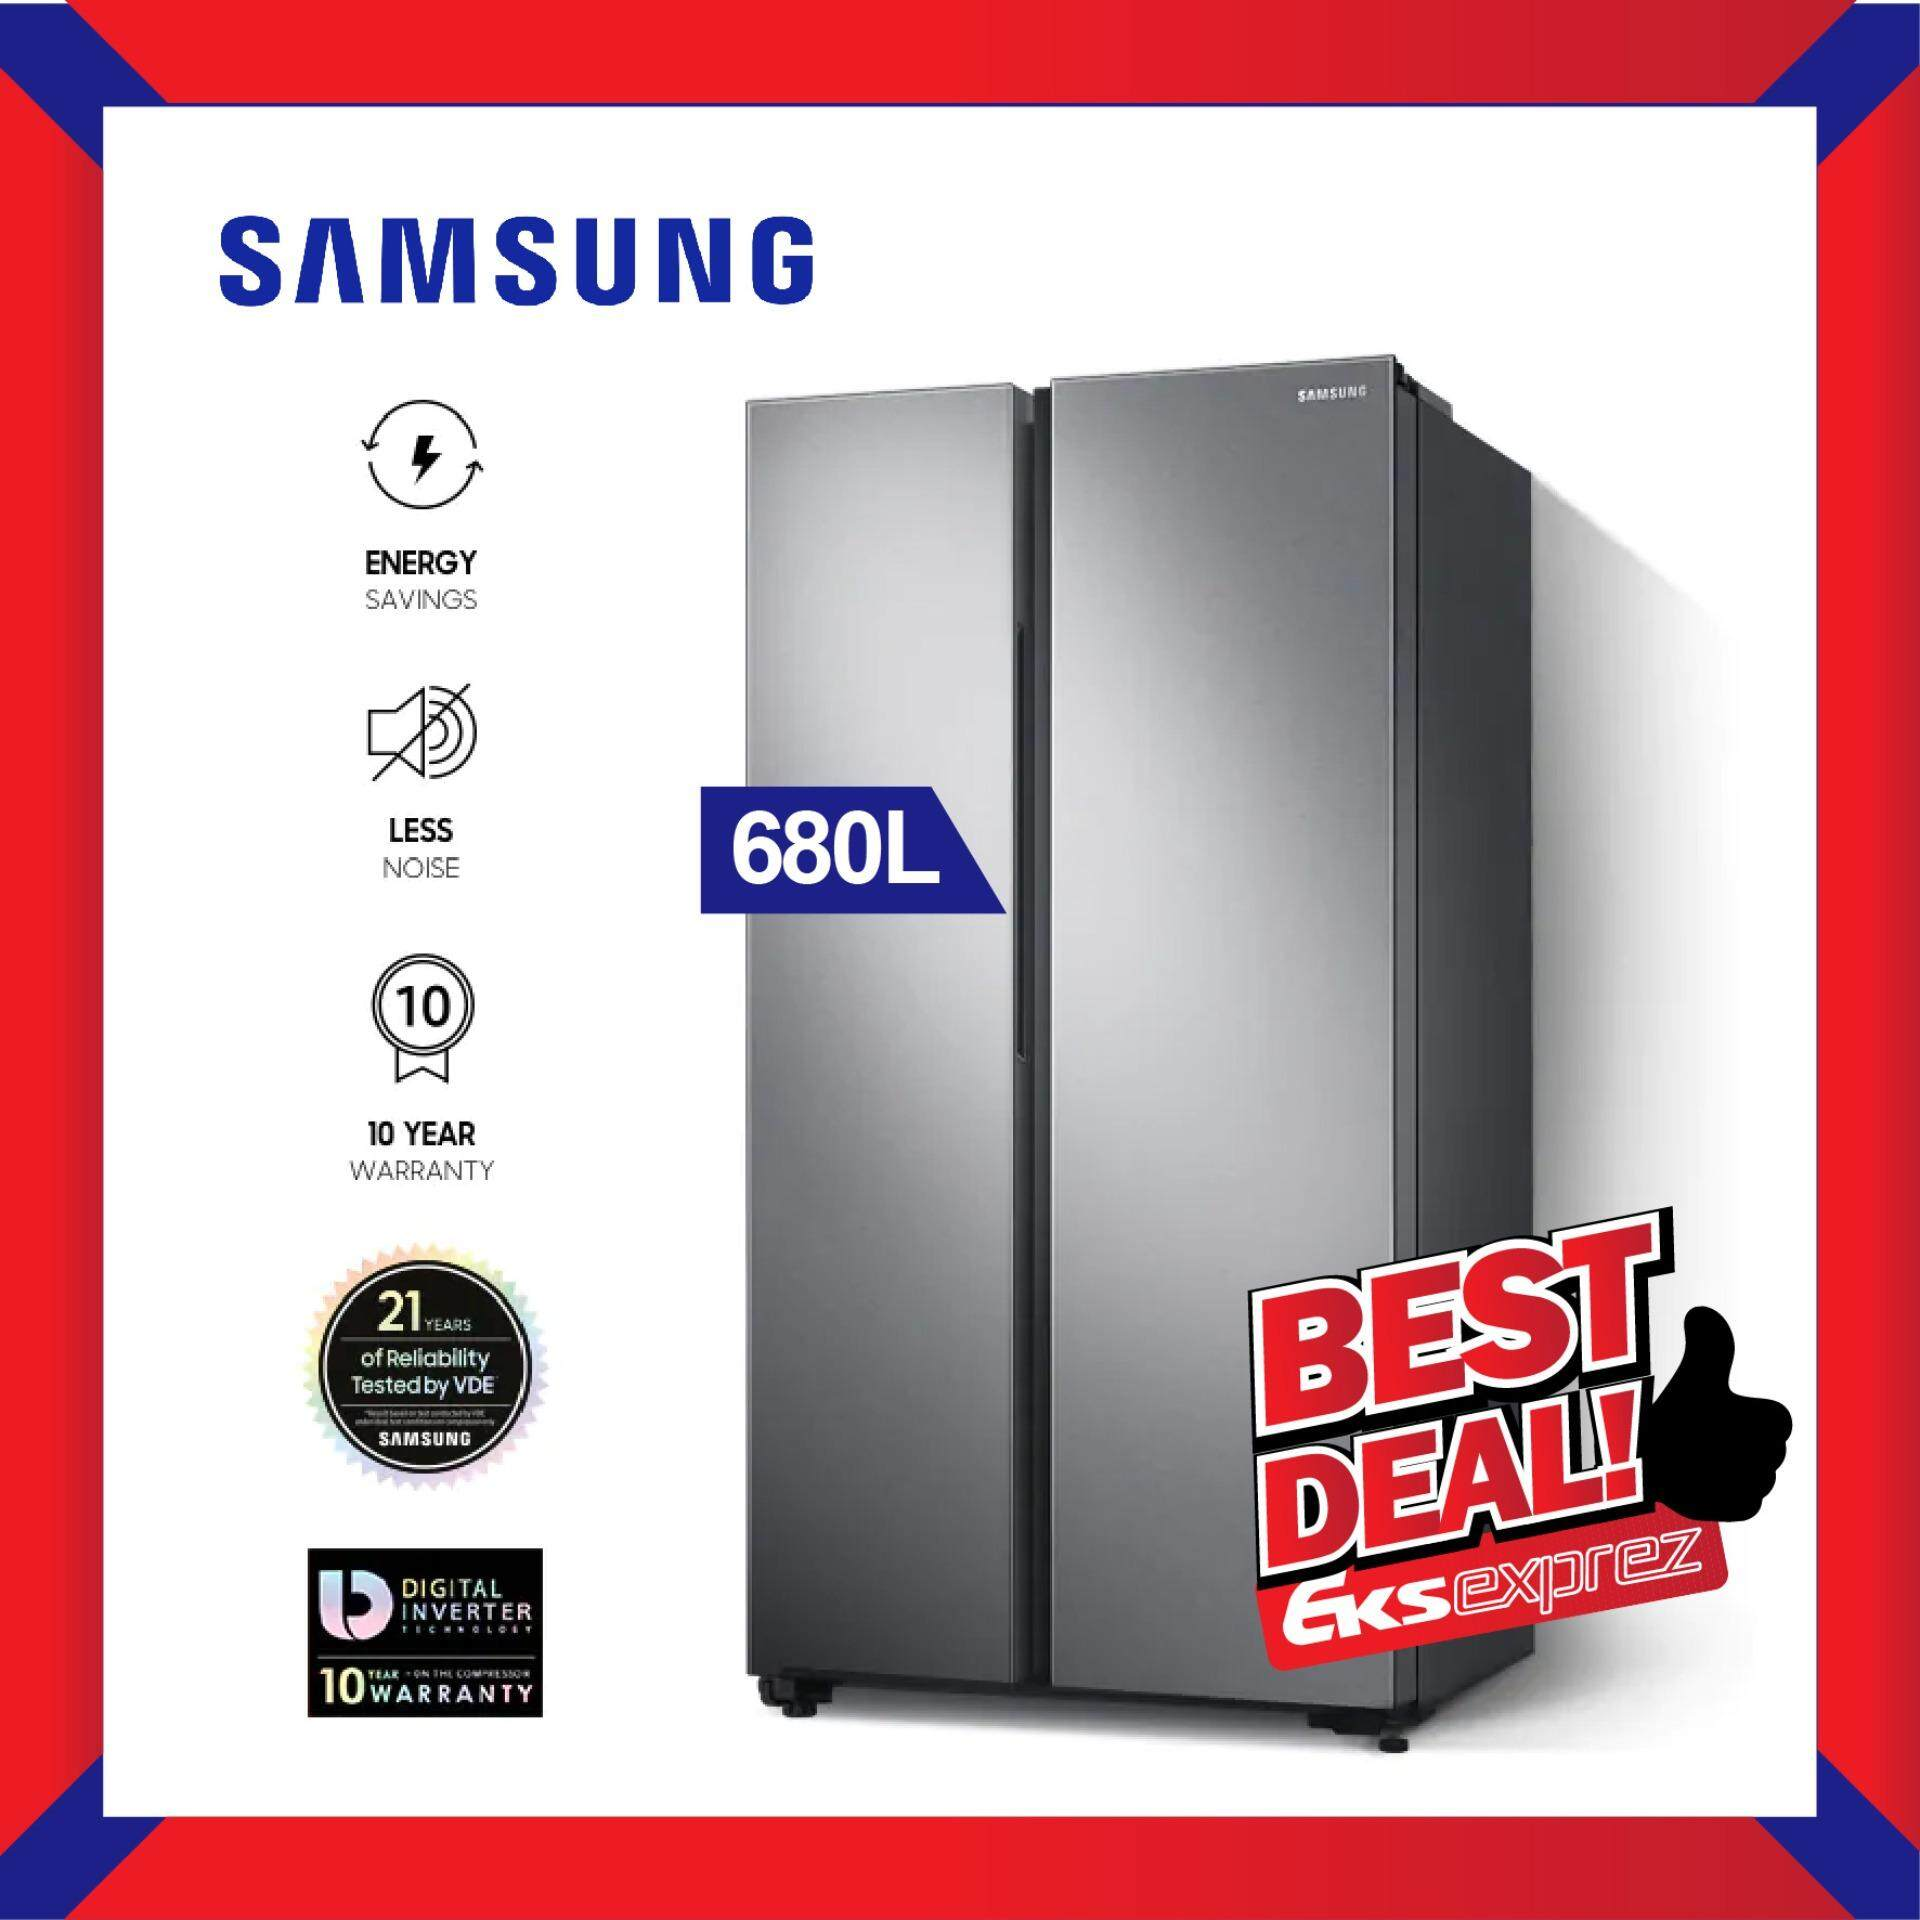 Samsung RS62R5031SL/ME 680L Side by Side Fridge Refrigerator with Large Capacity (SpaceMax)